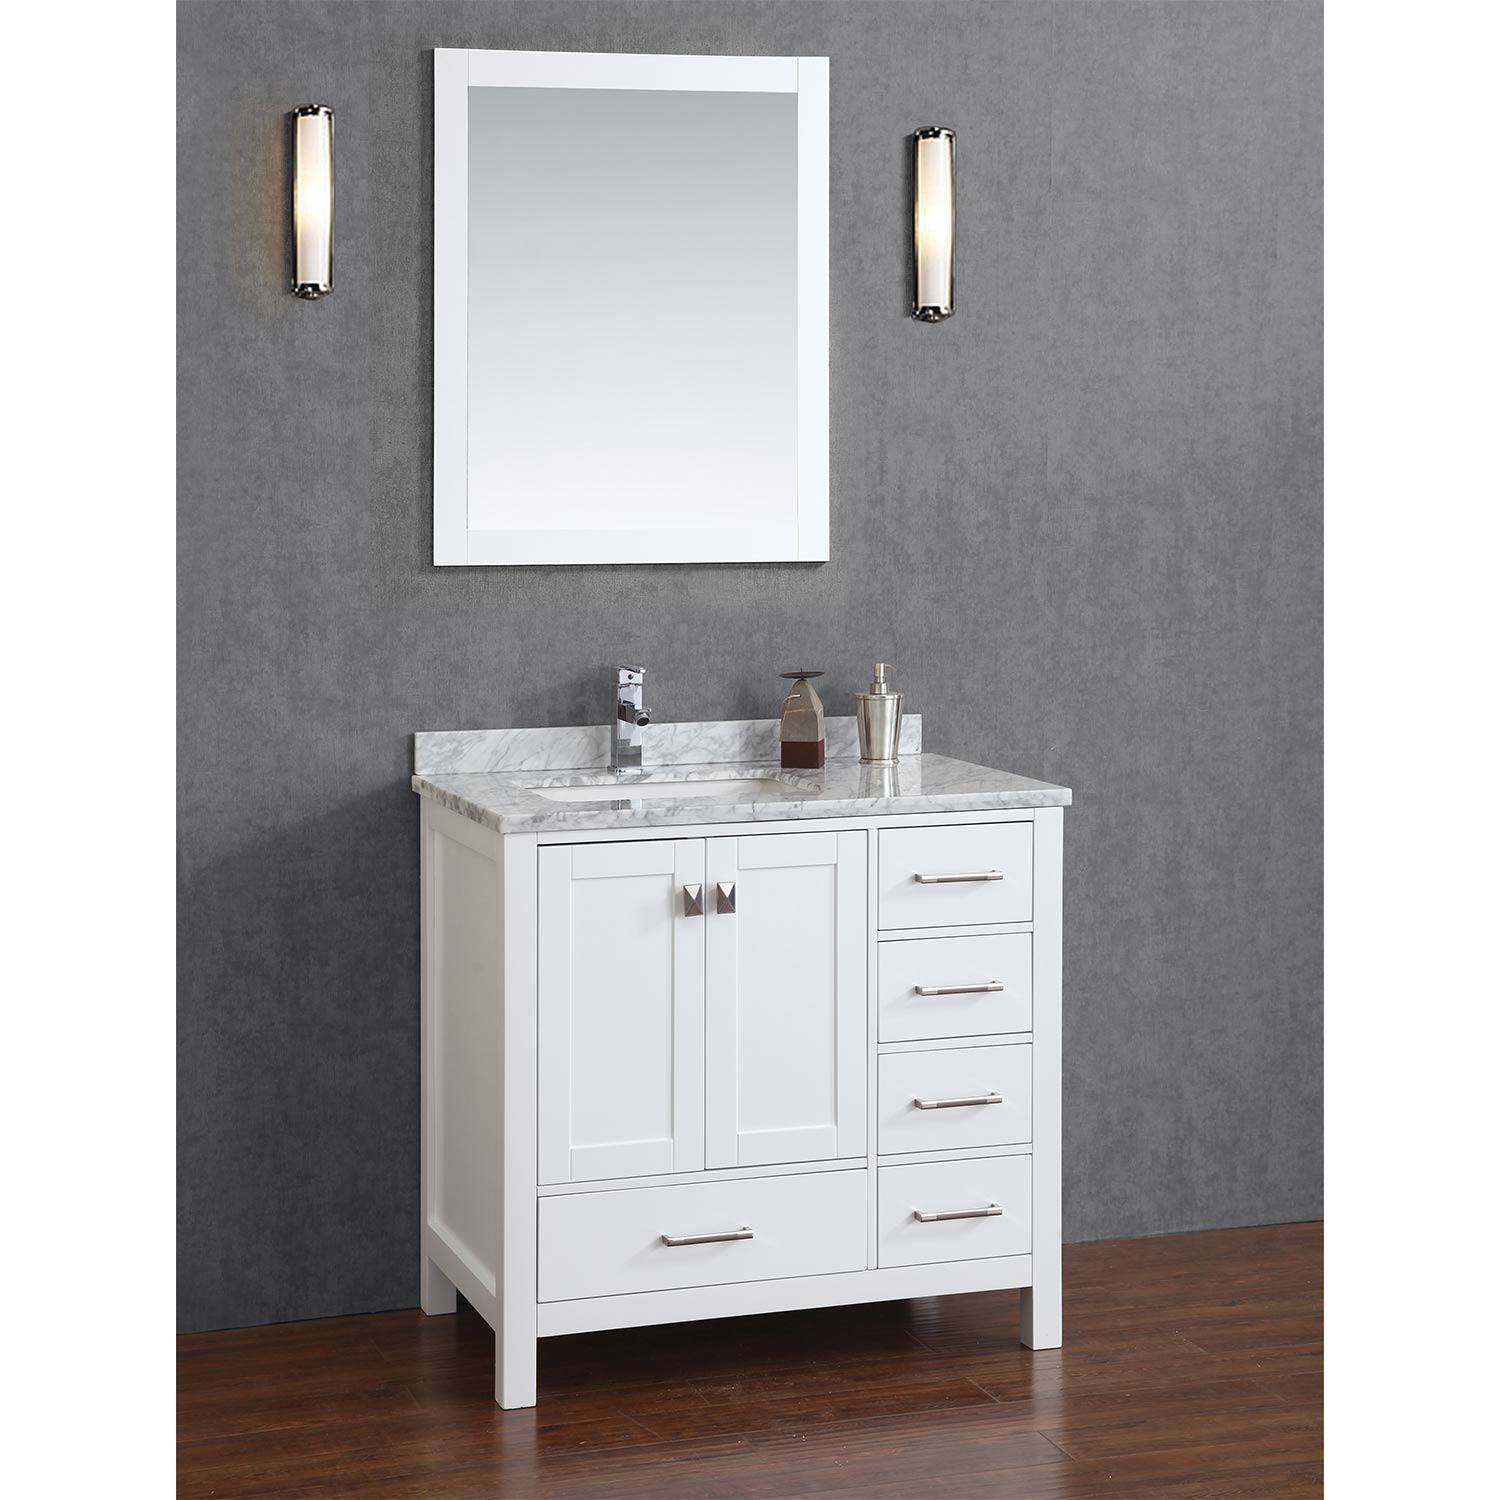 Buy vincent 36 inch solid wood single bathroom vanity in for Bathroom vanities